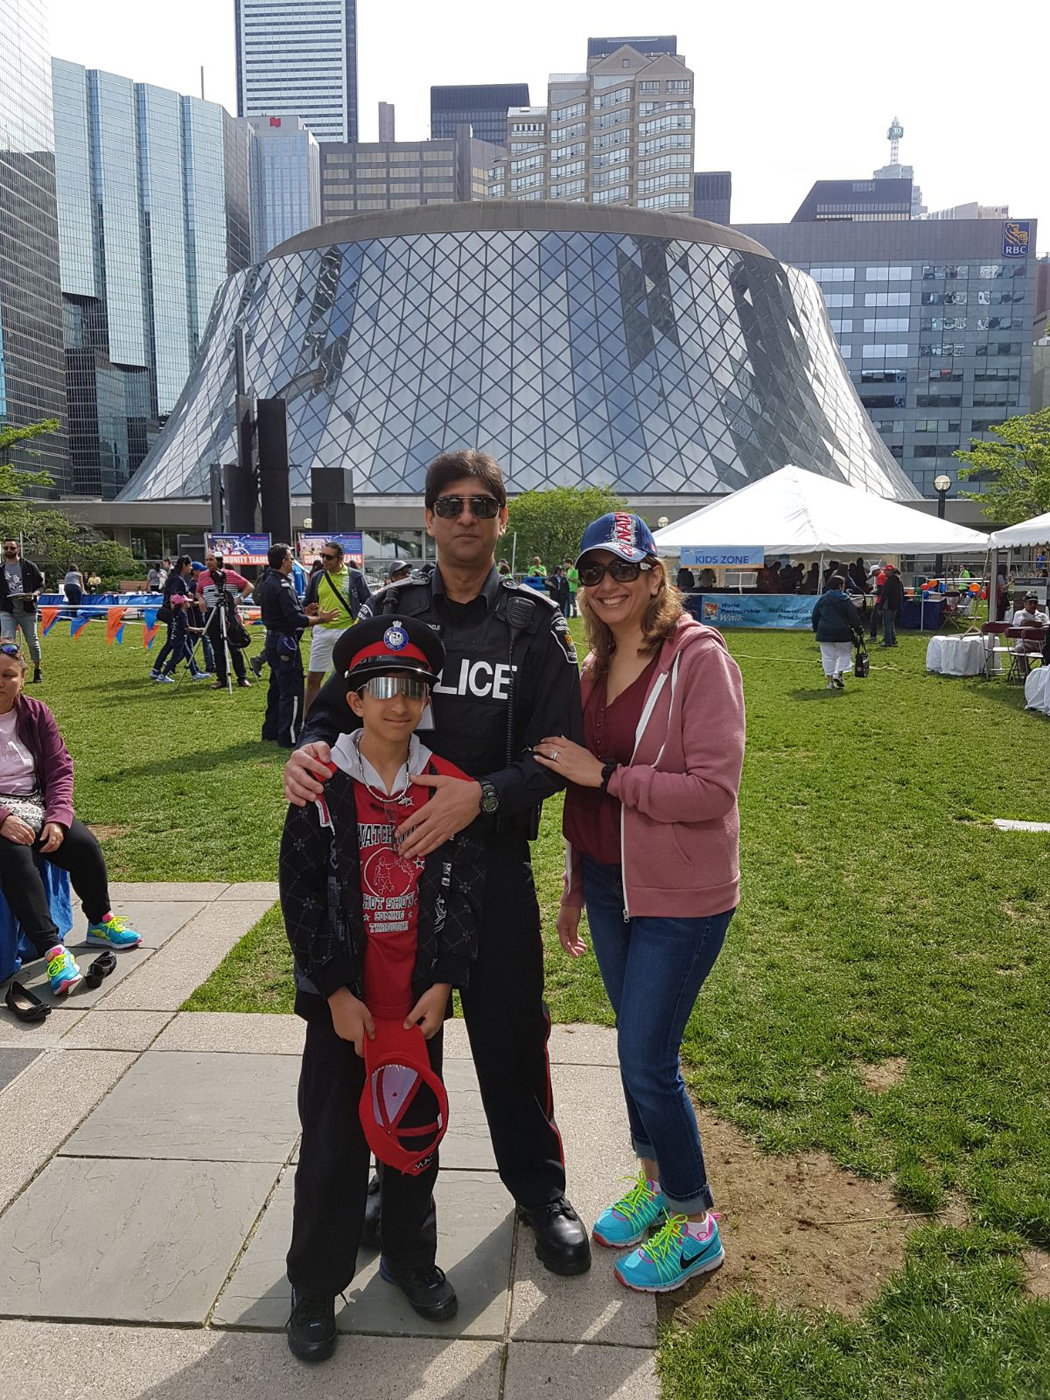 A woman, a man and a boy stand in front of Roy Thomson Hall in Toronto